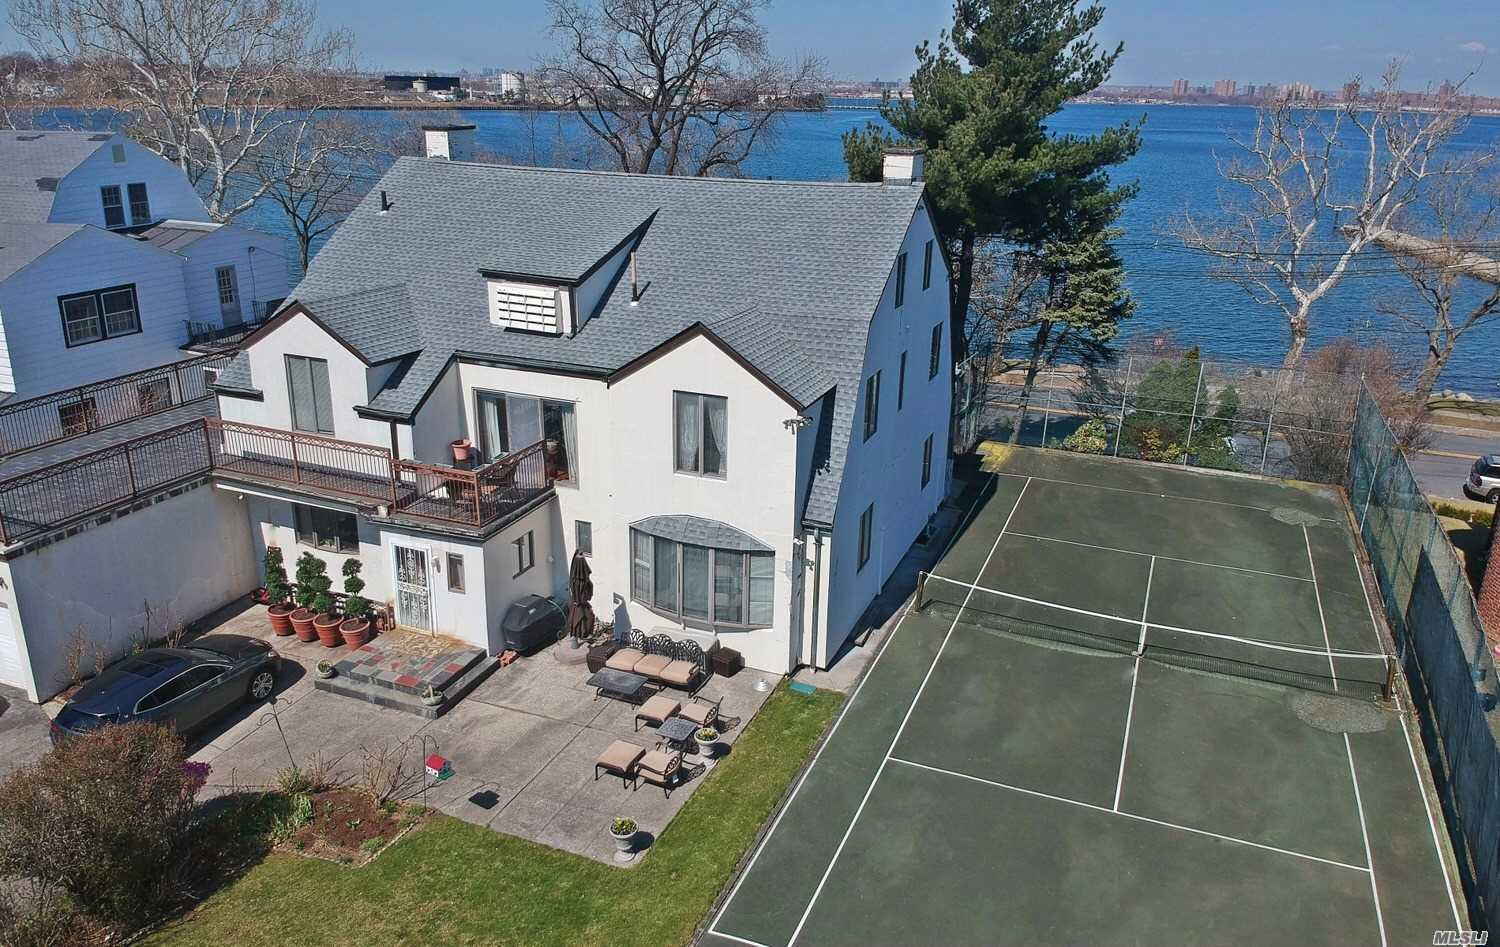 Large Center Hall Colonial with Waterfront and Bridge Views. 5 Bedrooms, 2 Full, 1/2 Baths . Huge size rooms. Open plan Kitchen/Family Room. Huge Elegant .Entry Foyer. 3 Fireplaces. One of a kind Home On 1/3 Acre Lot and the Only Private Tennis Court In The Community. 2 Car Attached .garage. Anderson Windows. Roof 4 Years Old, Grand Home Loaded with Old World Charm LOCATION!!!LOCATION, , , LOCATION !!!